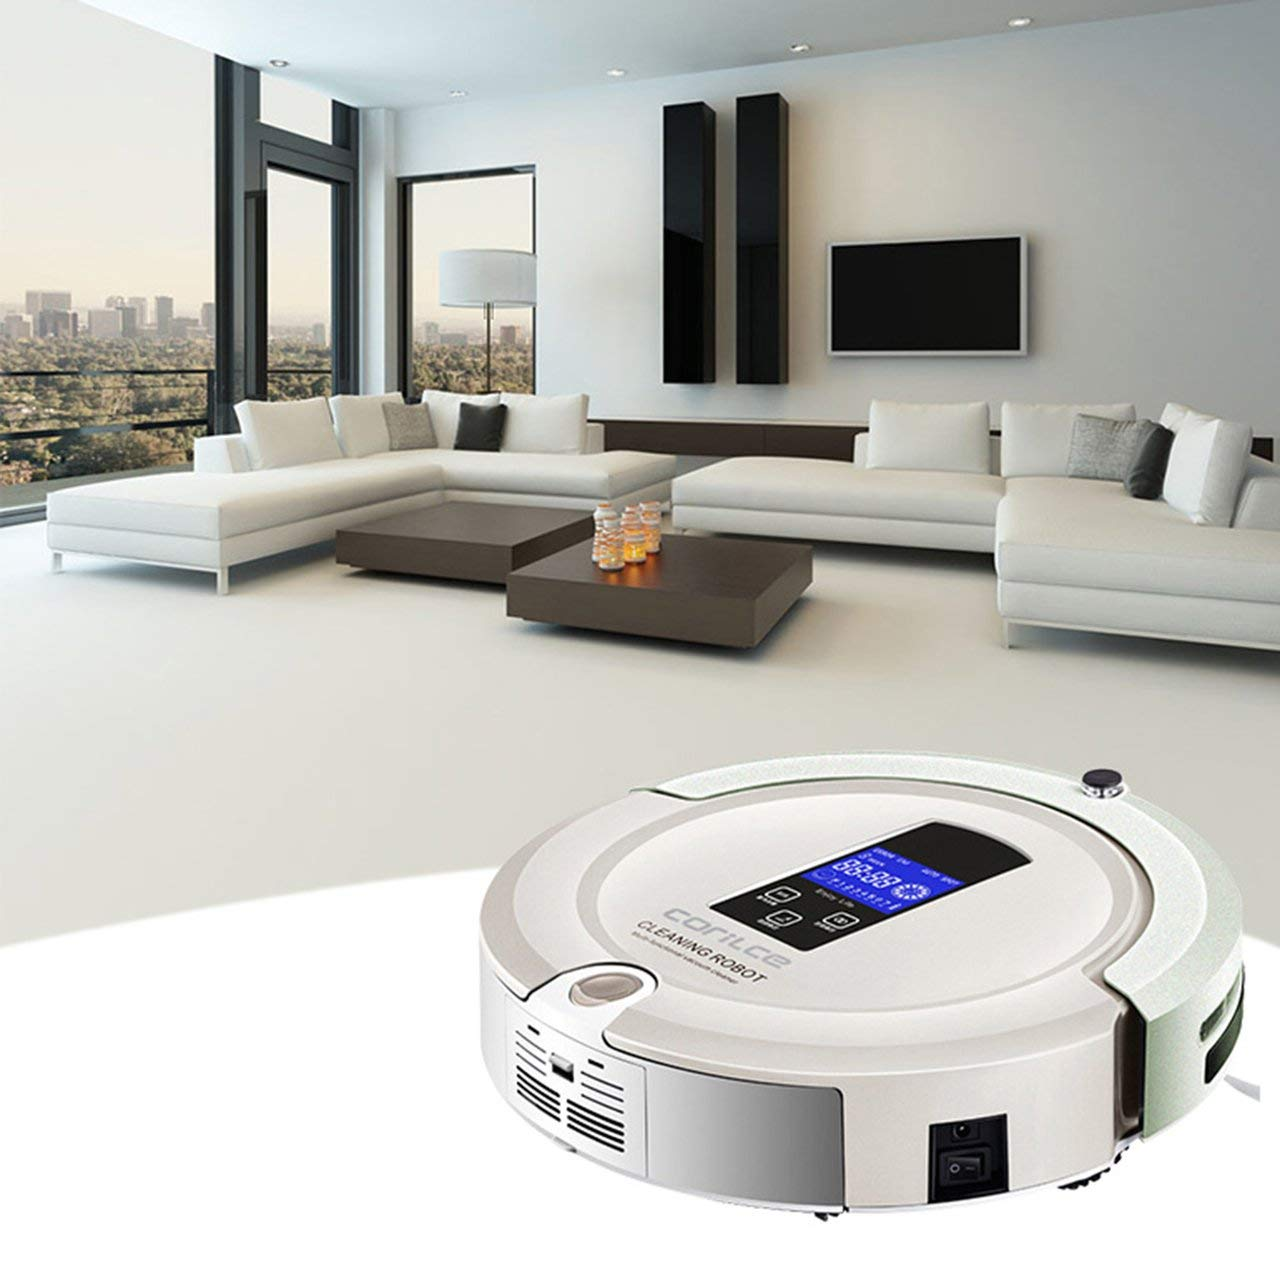 Jasnyfall Robot Cleaner Corile A325S Bow Line Cleaning Robot LCD Screen Aspirador automático Completo - Beige: Amazon.es: Hogar